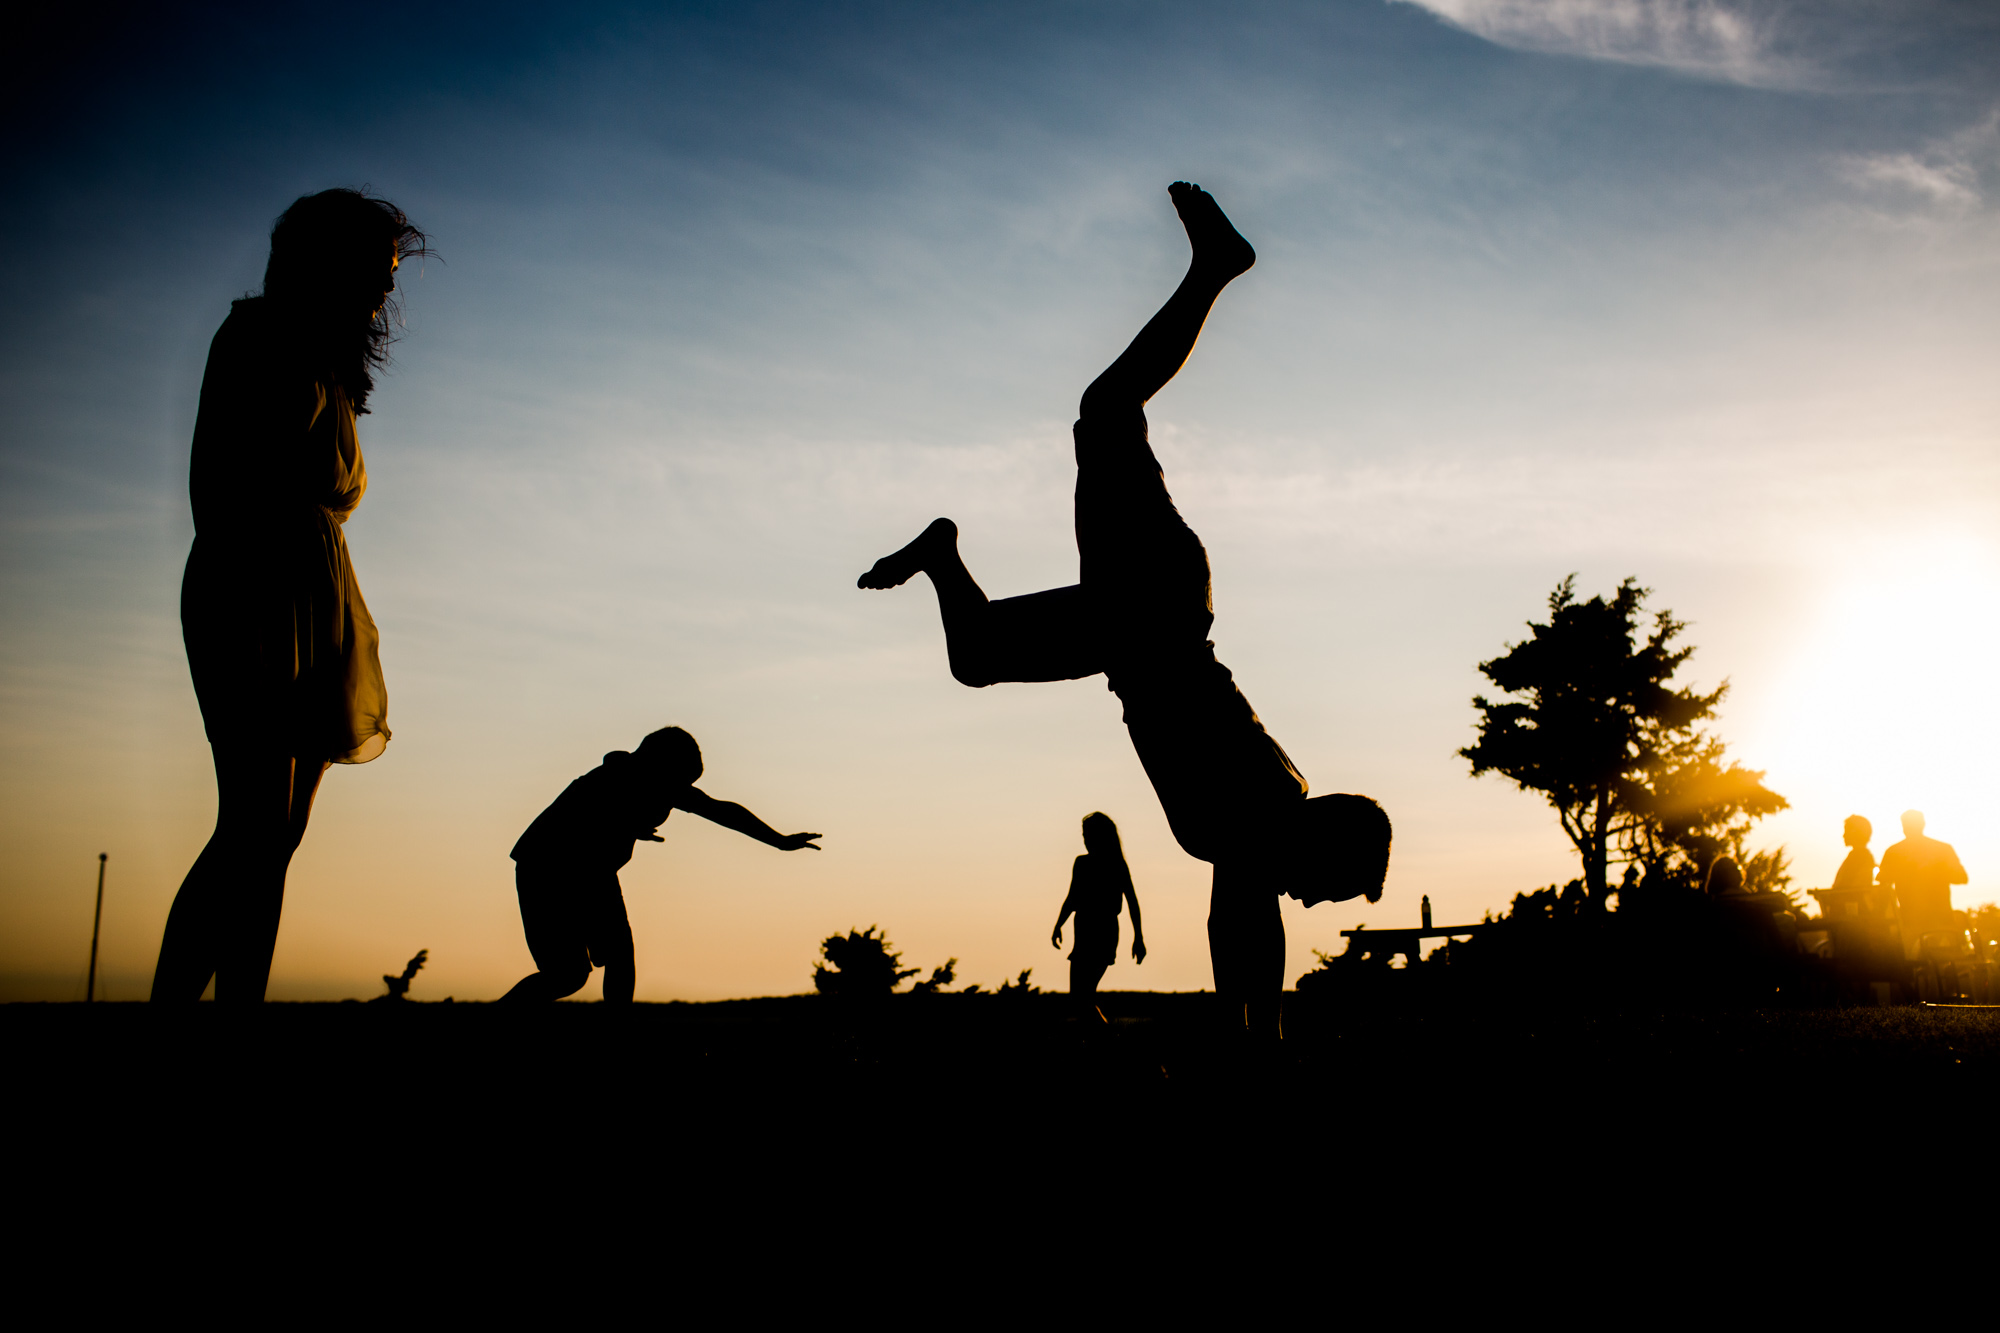 silhouette of boy flipping